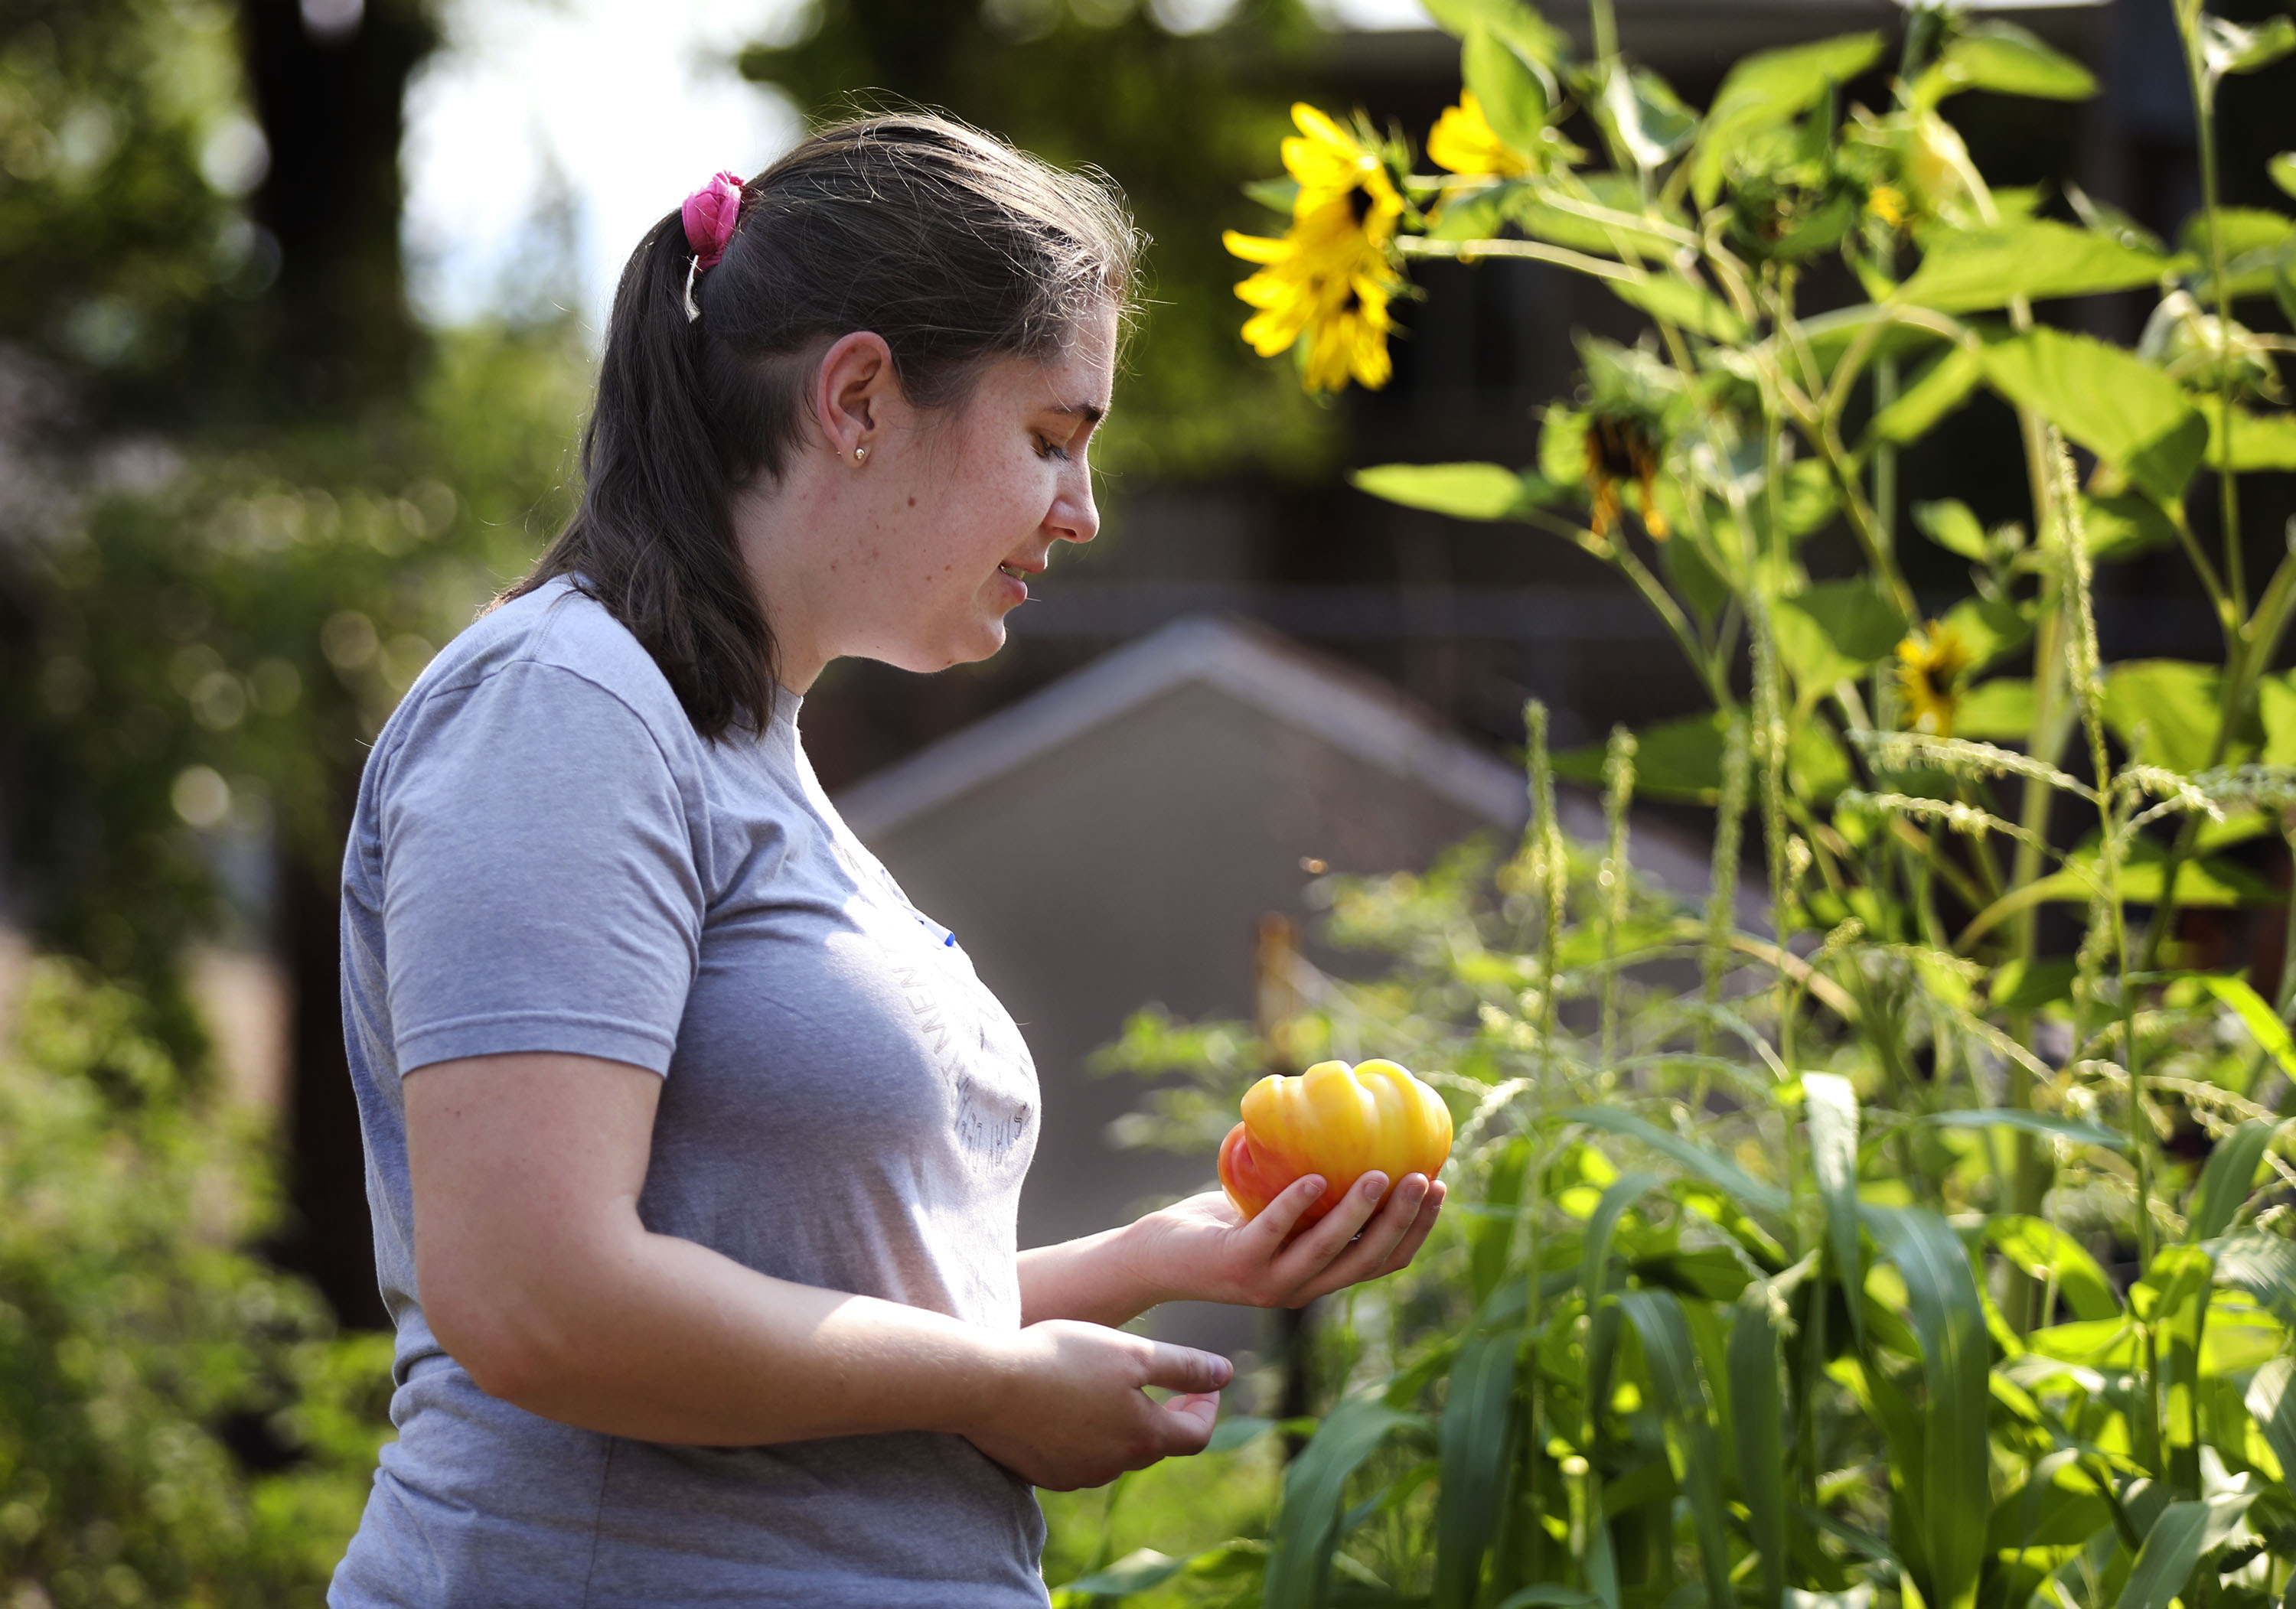 Gardener Bailey Roberts admires a tomato from her plot in a new community garden at Richmond Park in Salt Lake City.